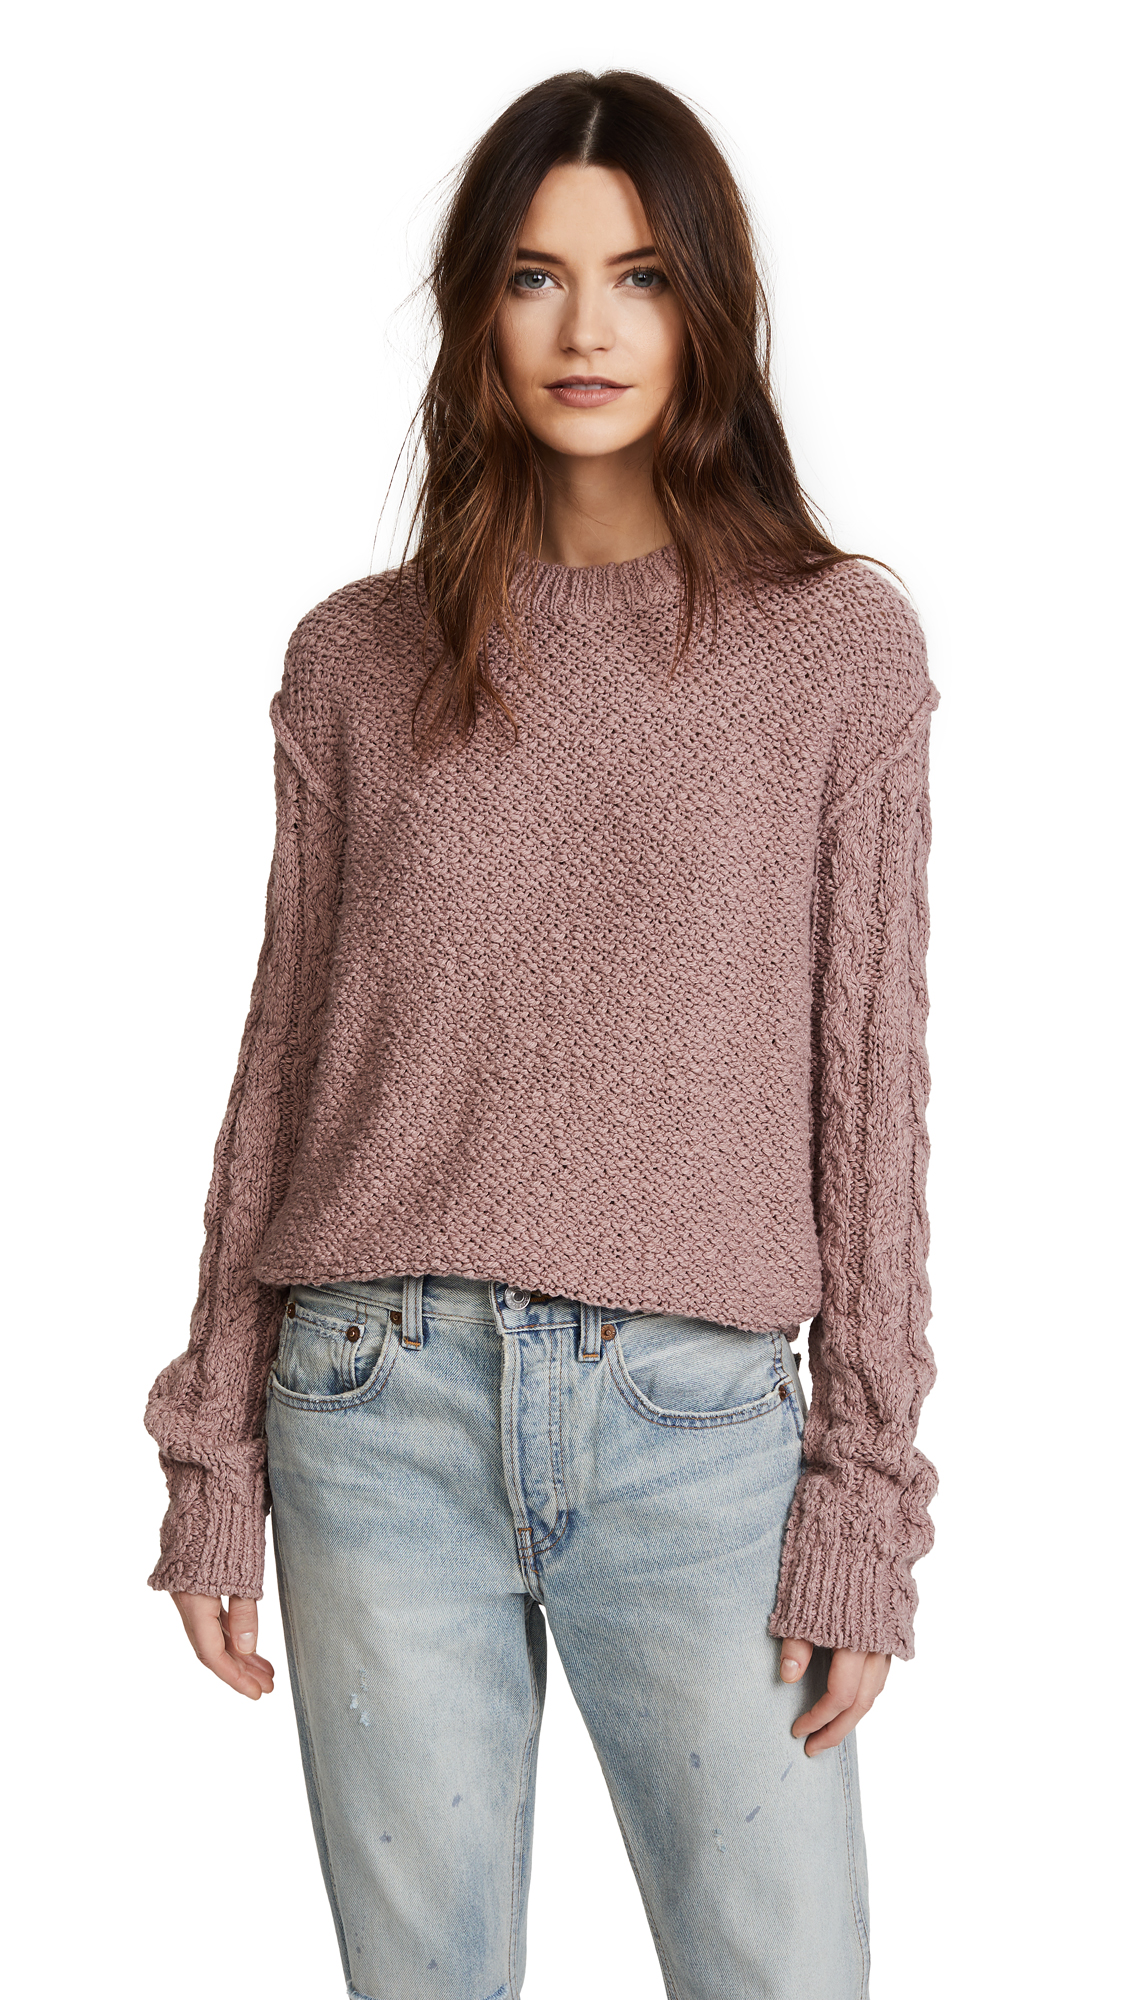 Acne Studios Hila Cable Sweater - Dusty Pink